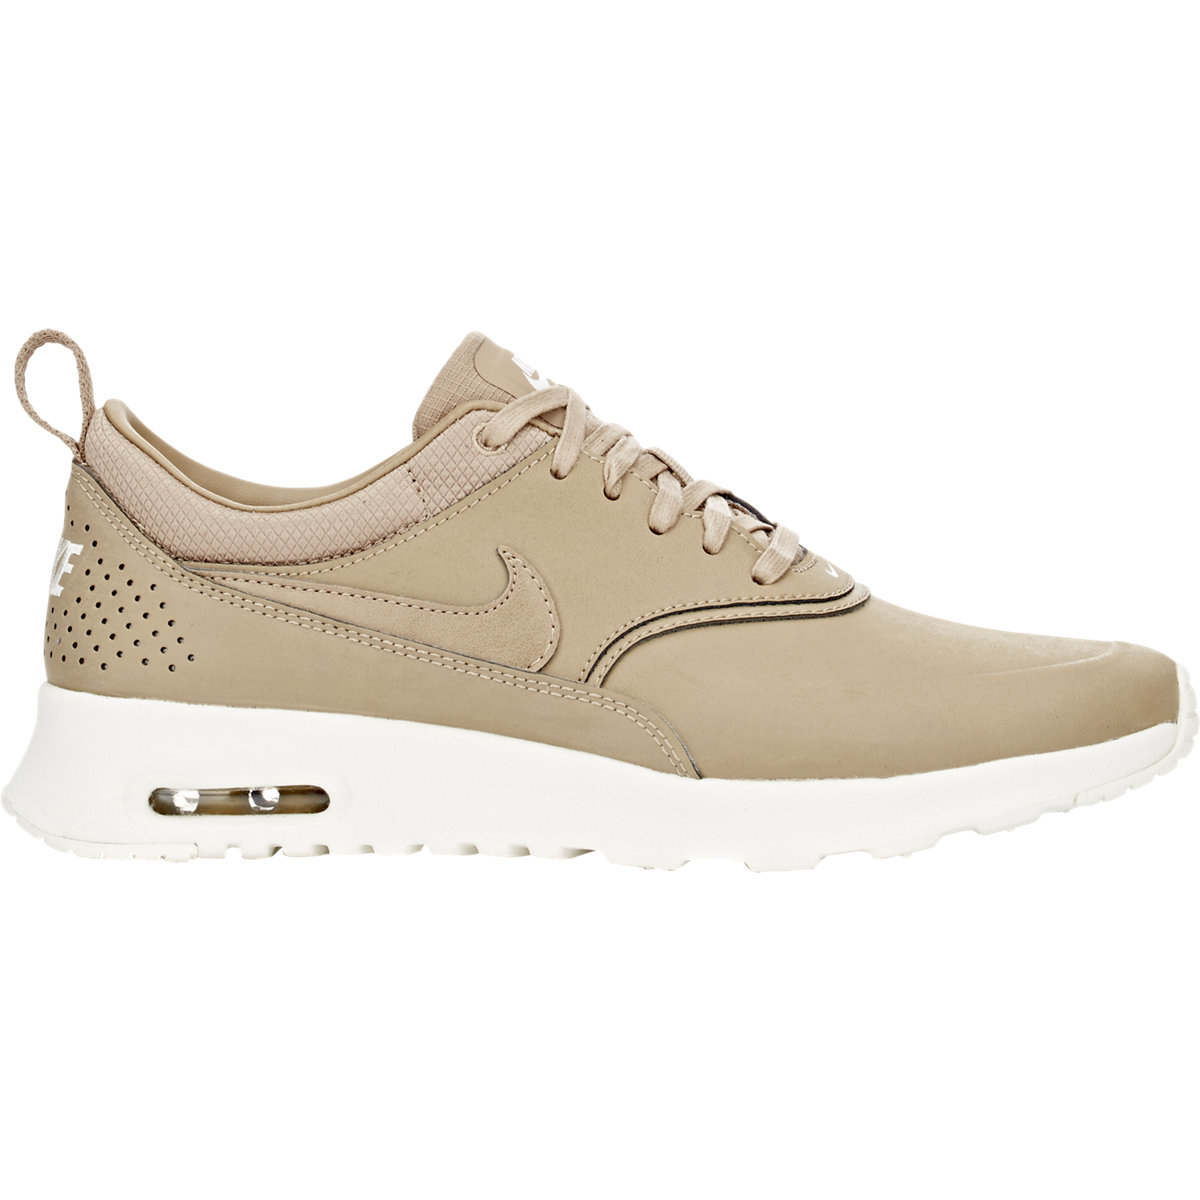 buy online 5dc00 6113c Nike Air Max Thea Premium Sneakers in Natural for Men - Lyst